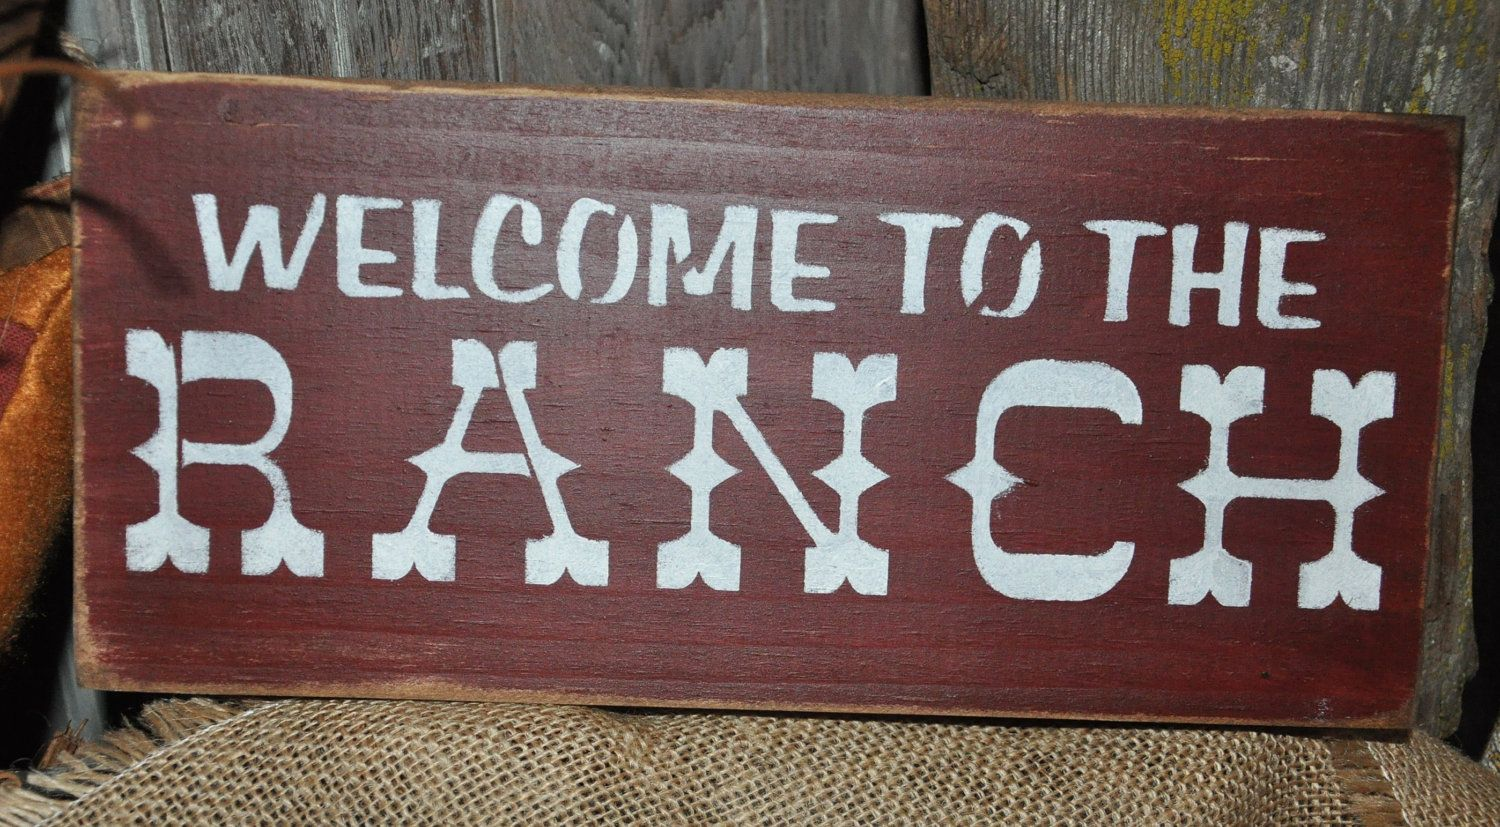 Country Decor Signs Endearing Primitive Rustic Western Country Wood Signshelf Sitter Home Decor Decorating Design